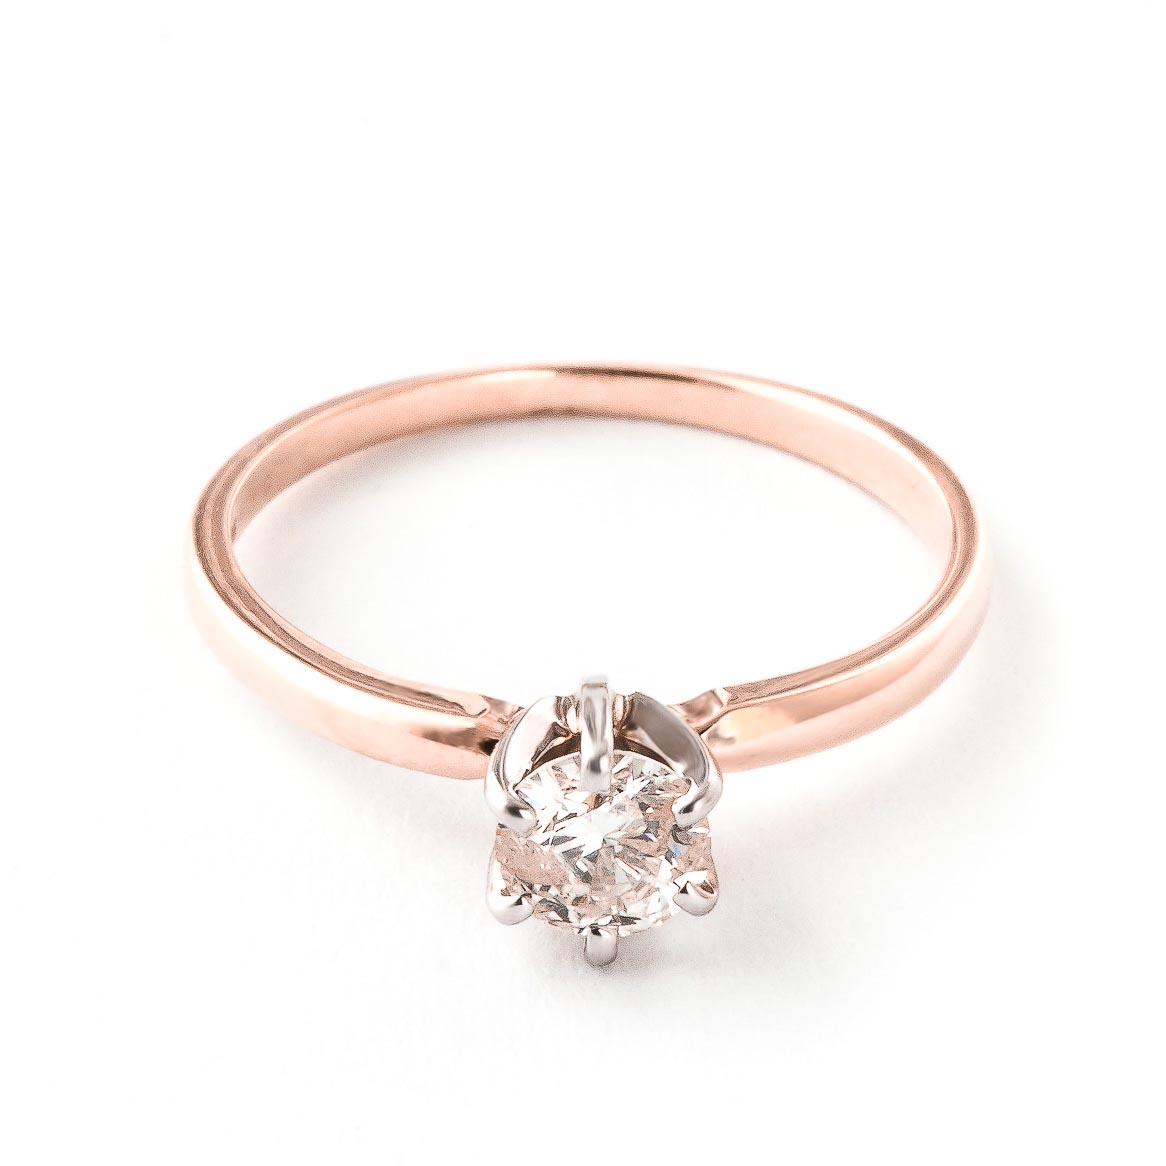 Diamond Solitaire Ring 0.4 ct in 18ct Rose Gold